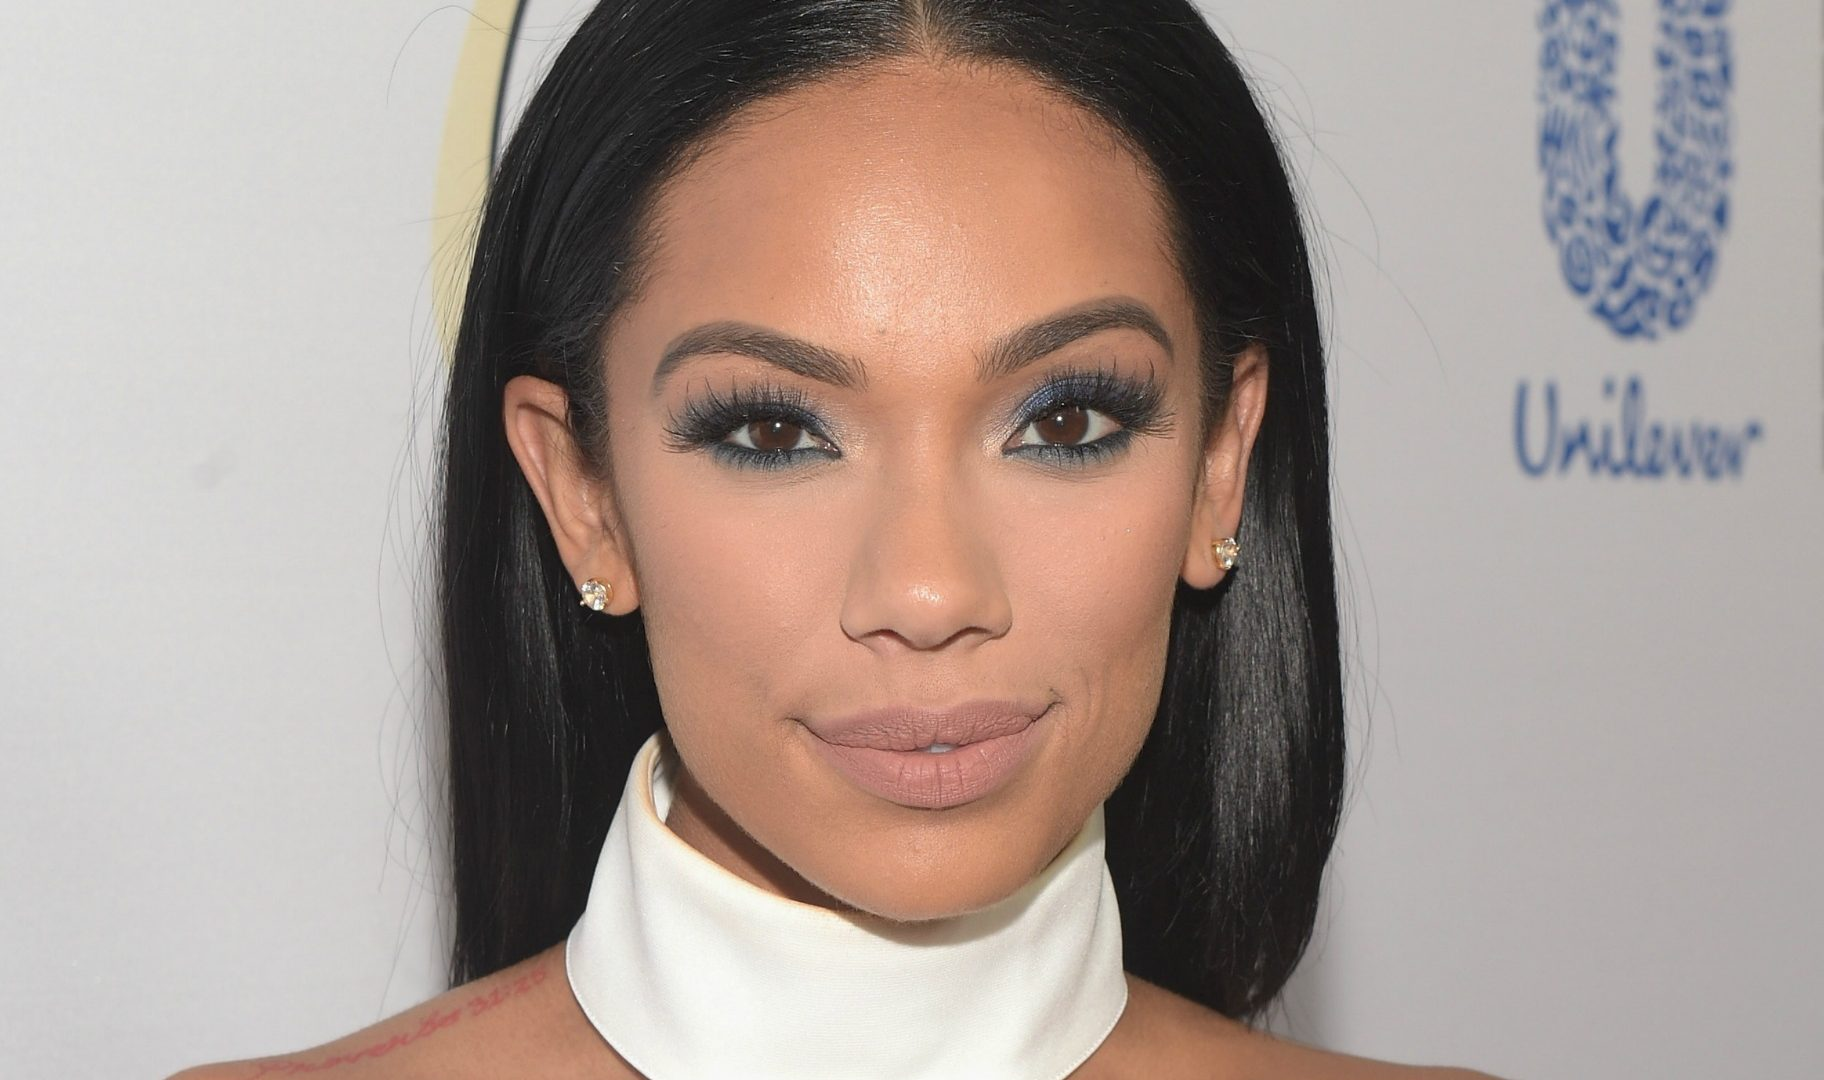 erica-mena-leaves-nothing-to-the-imagination-while-showing-off-her-curves-in-this-see-through-dress